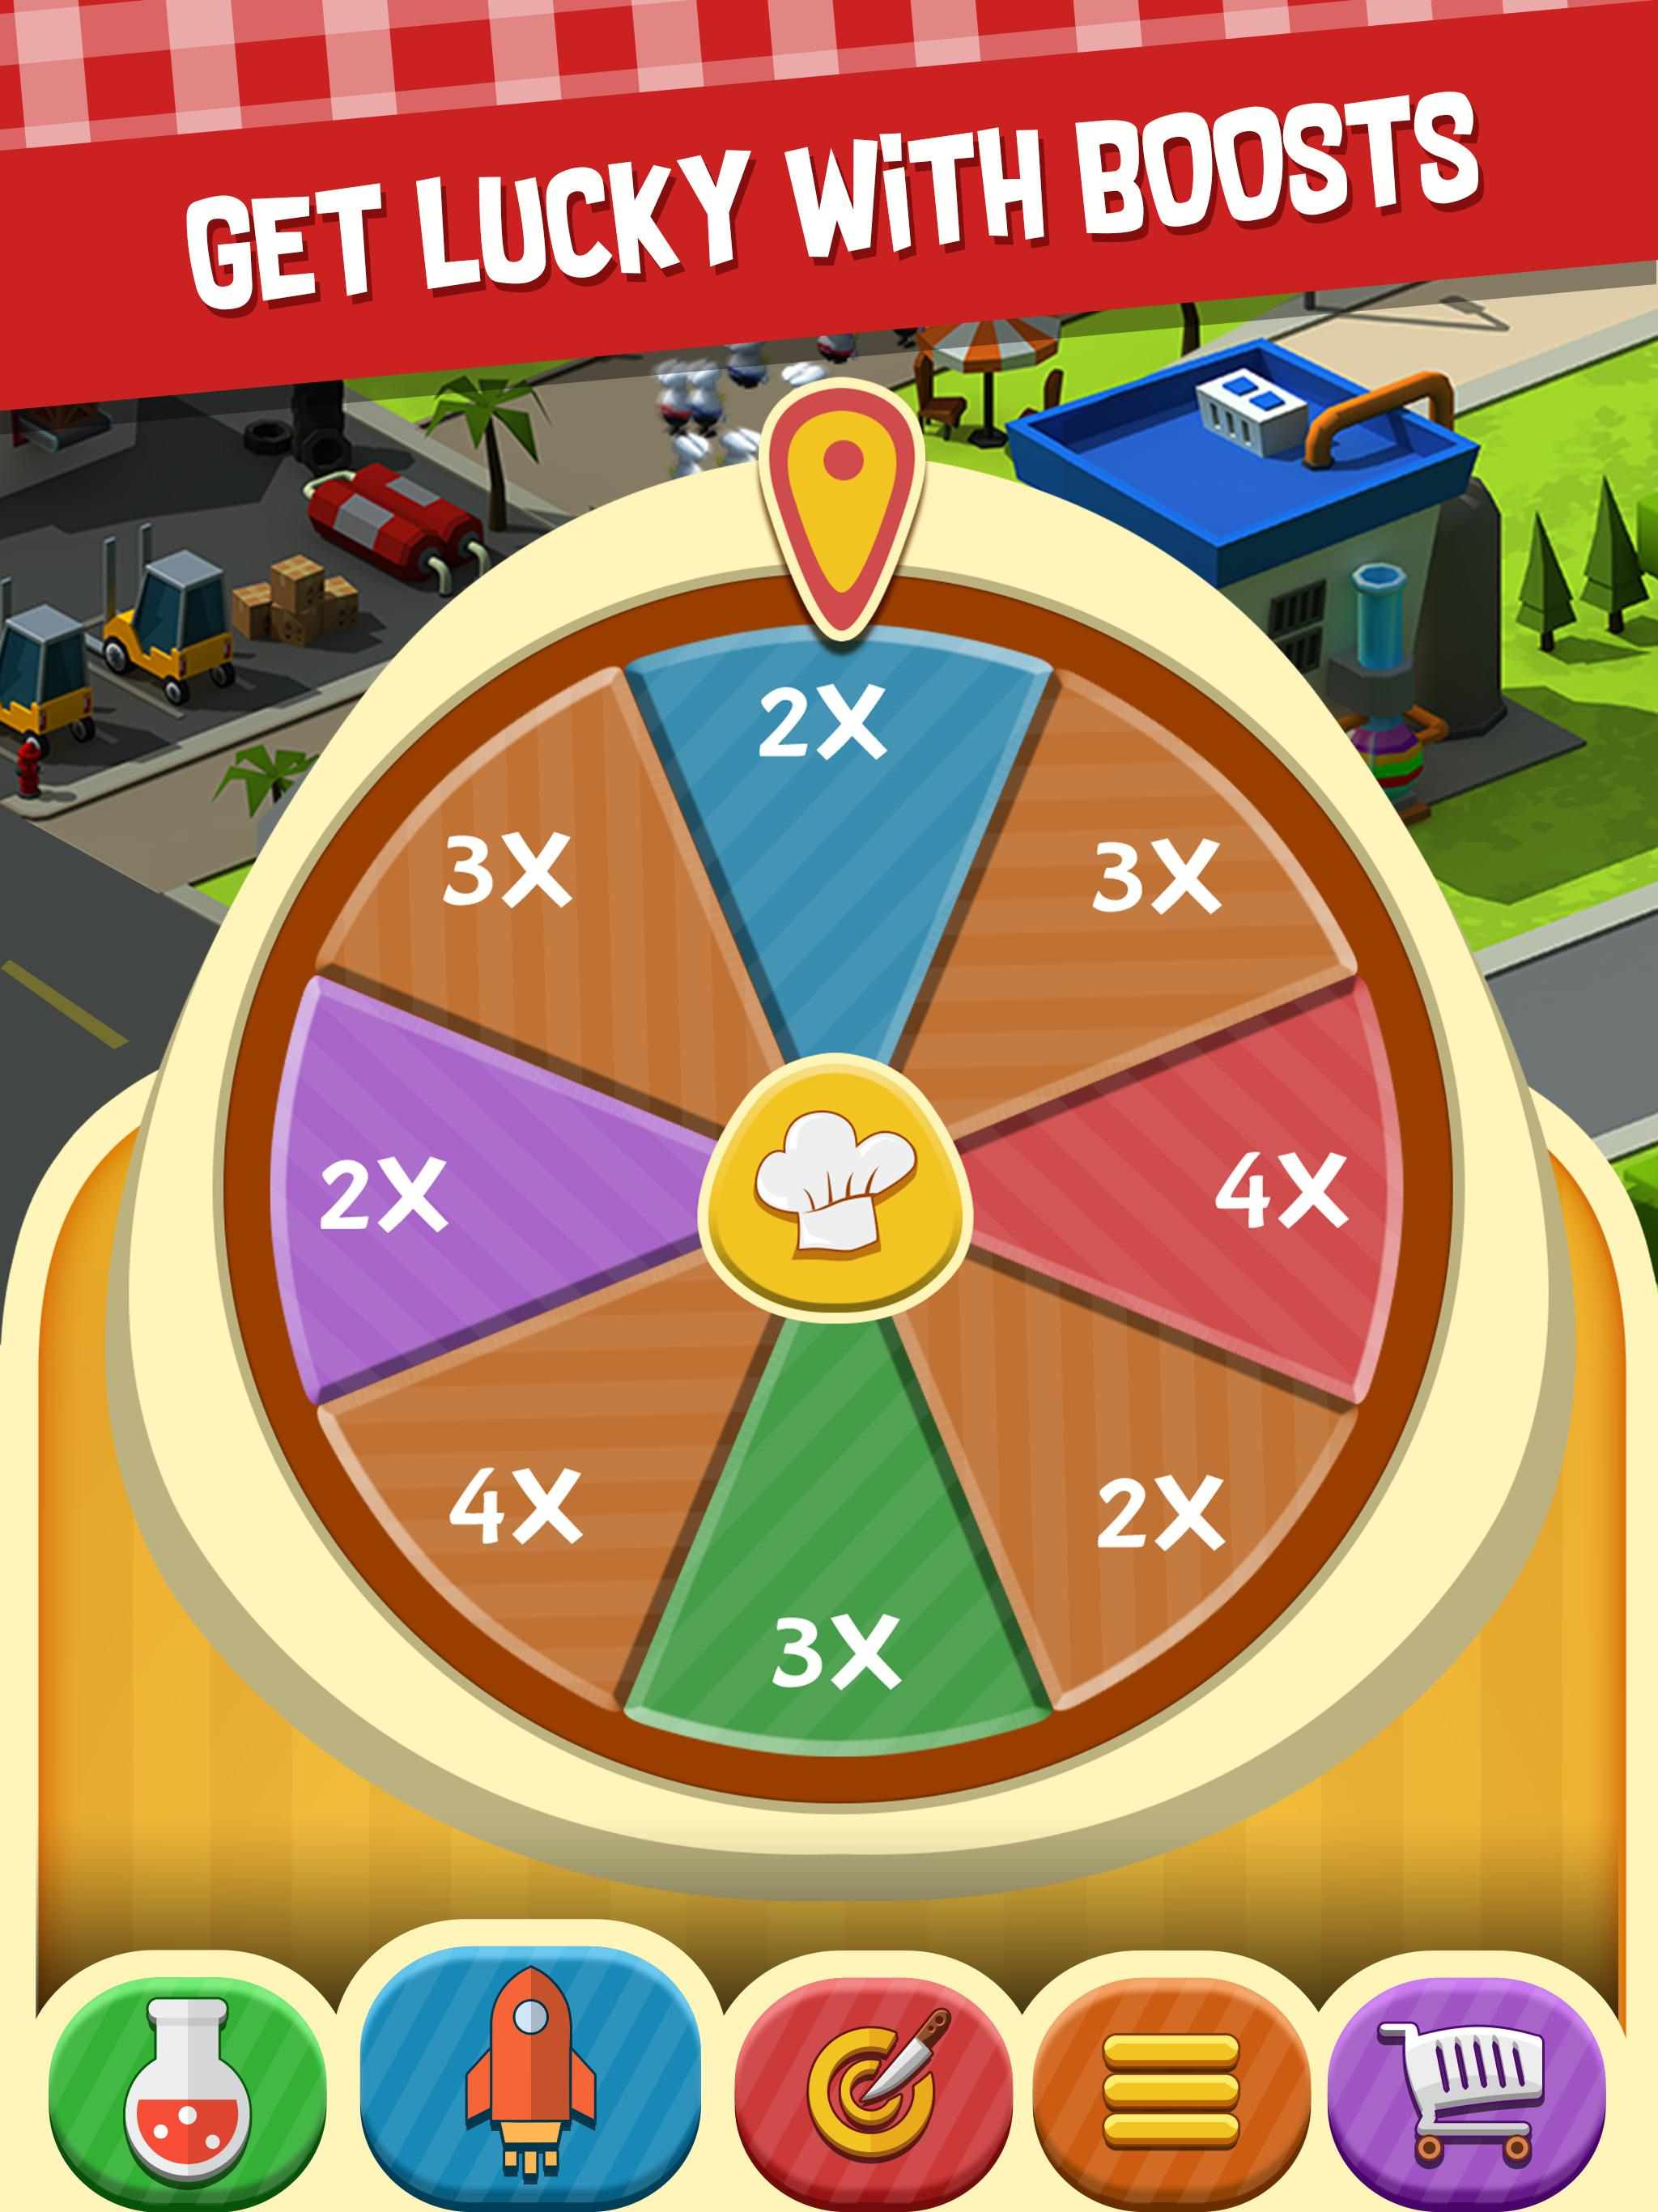 Idle Food Tycoon - Burger Clicker Games for Android - APK